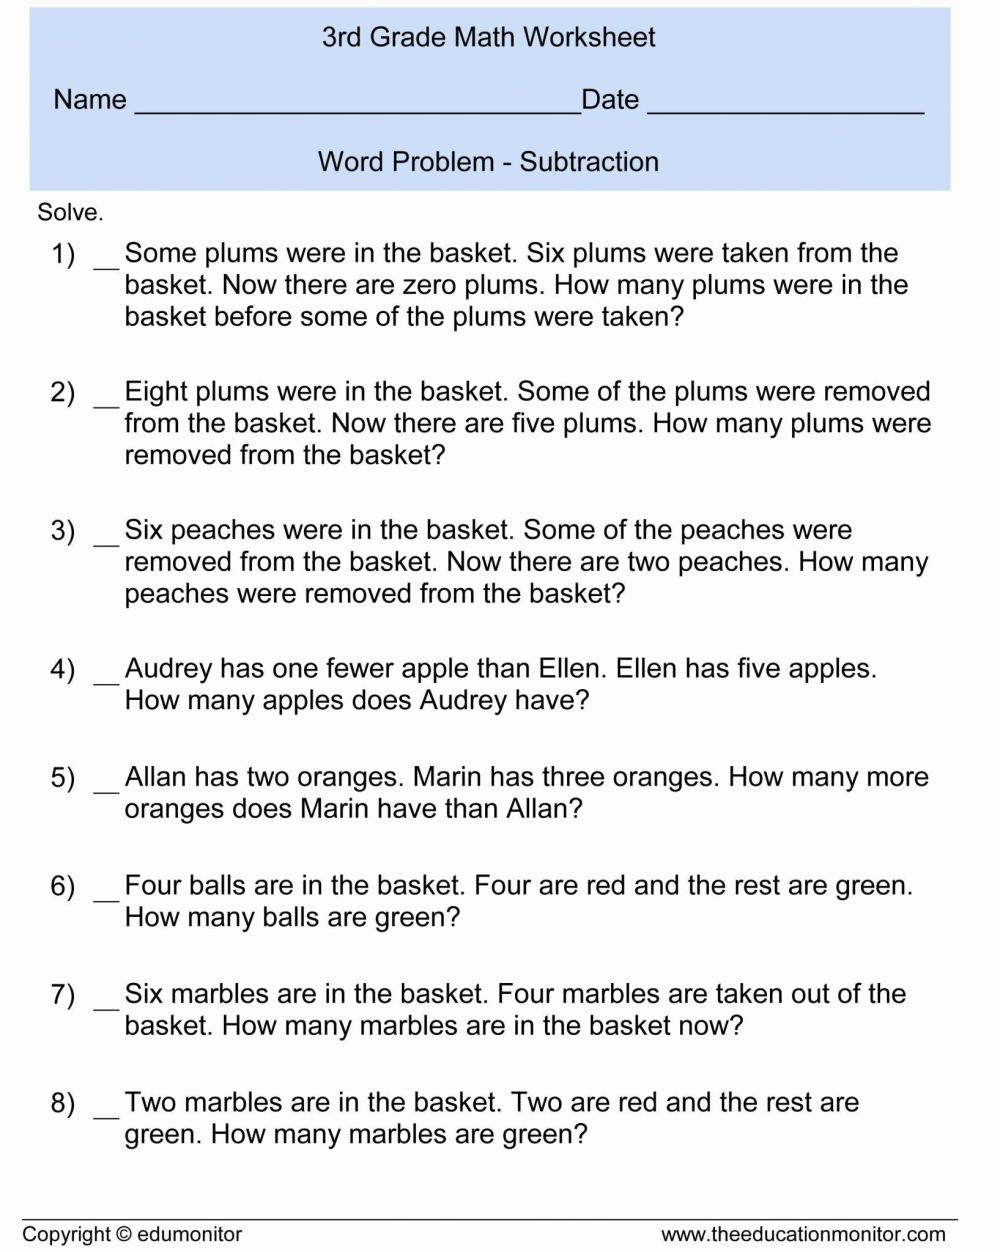 medium resolution of Estimate Quotient 4th Grade Math Worksheets   Printable Worksheets and  Activities for Teachers